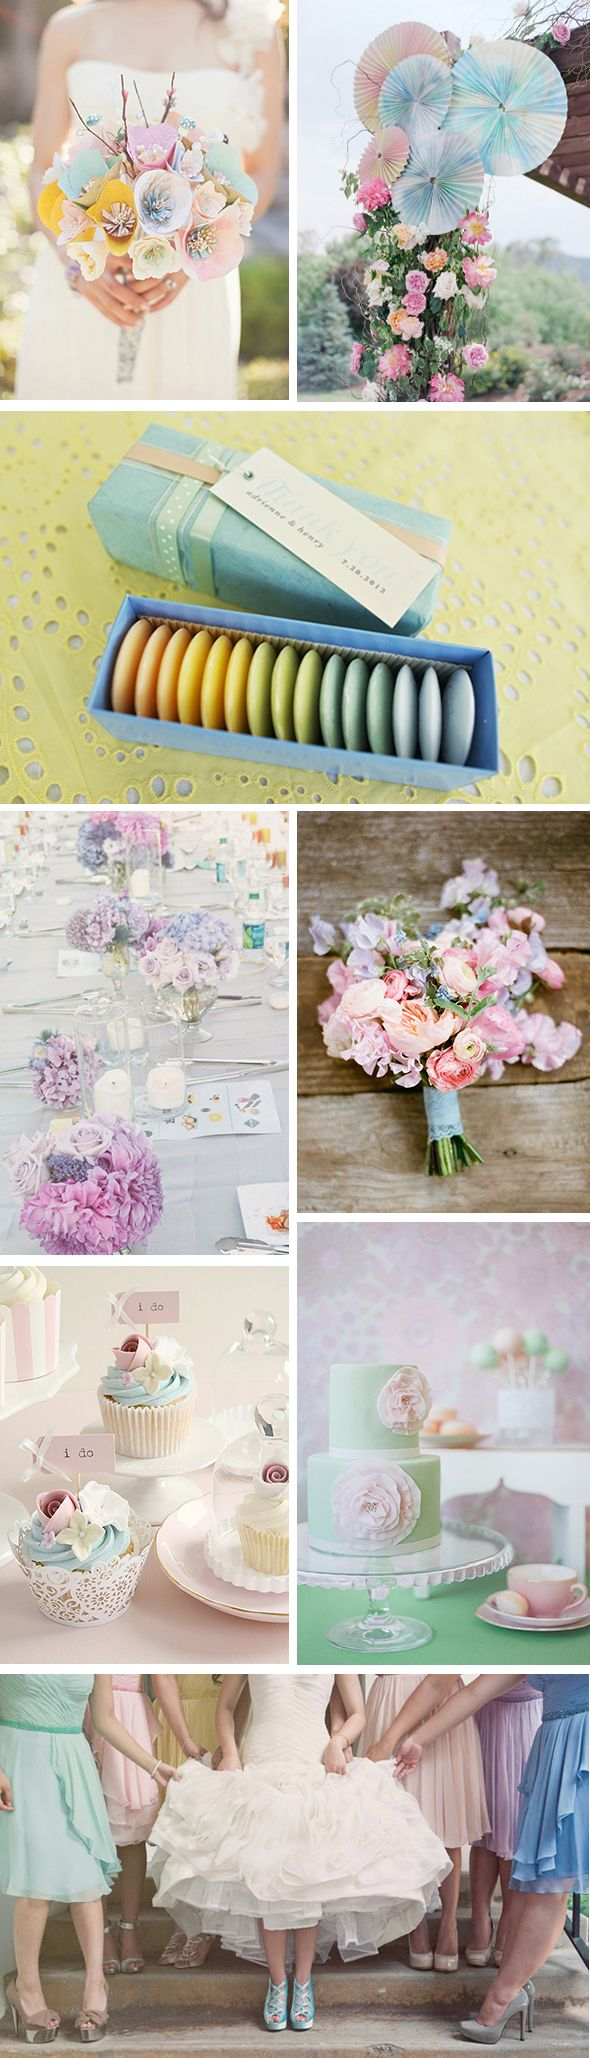 With springtime in full bloom, light and airy pastel colors are all the rage! The great thing about pastels for a wedding is they can be incorporated anywhere; flowers, table arrangements, bridesmaids, favors-you name it!